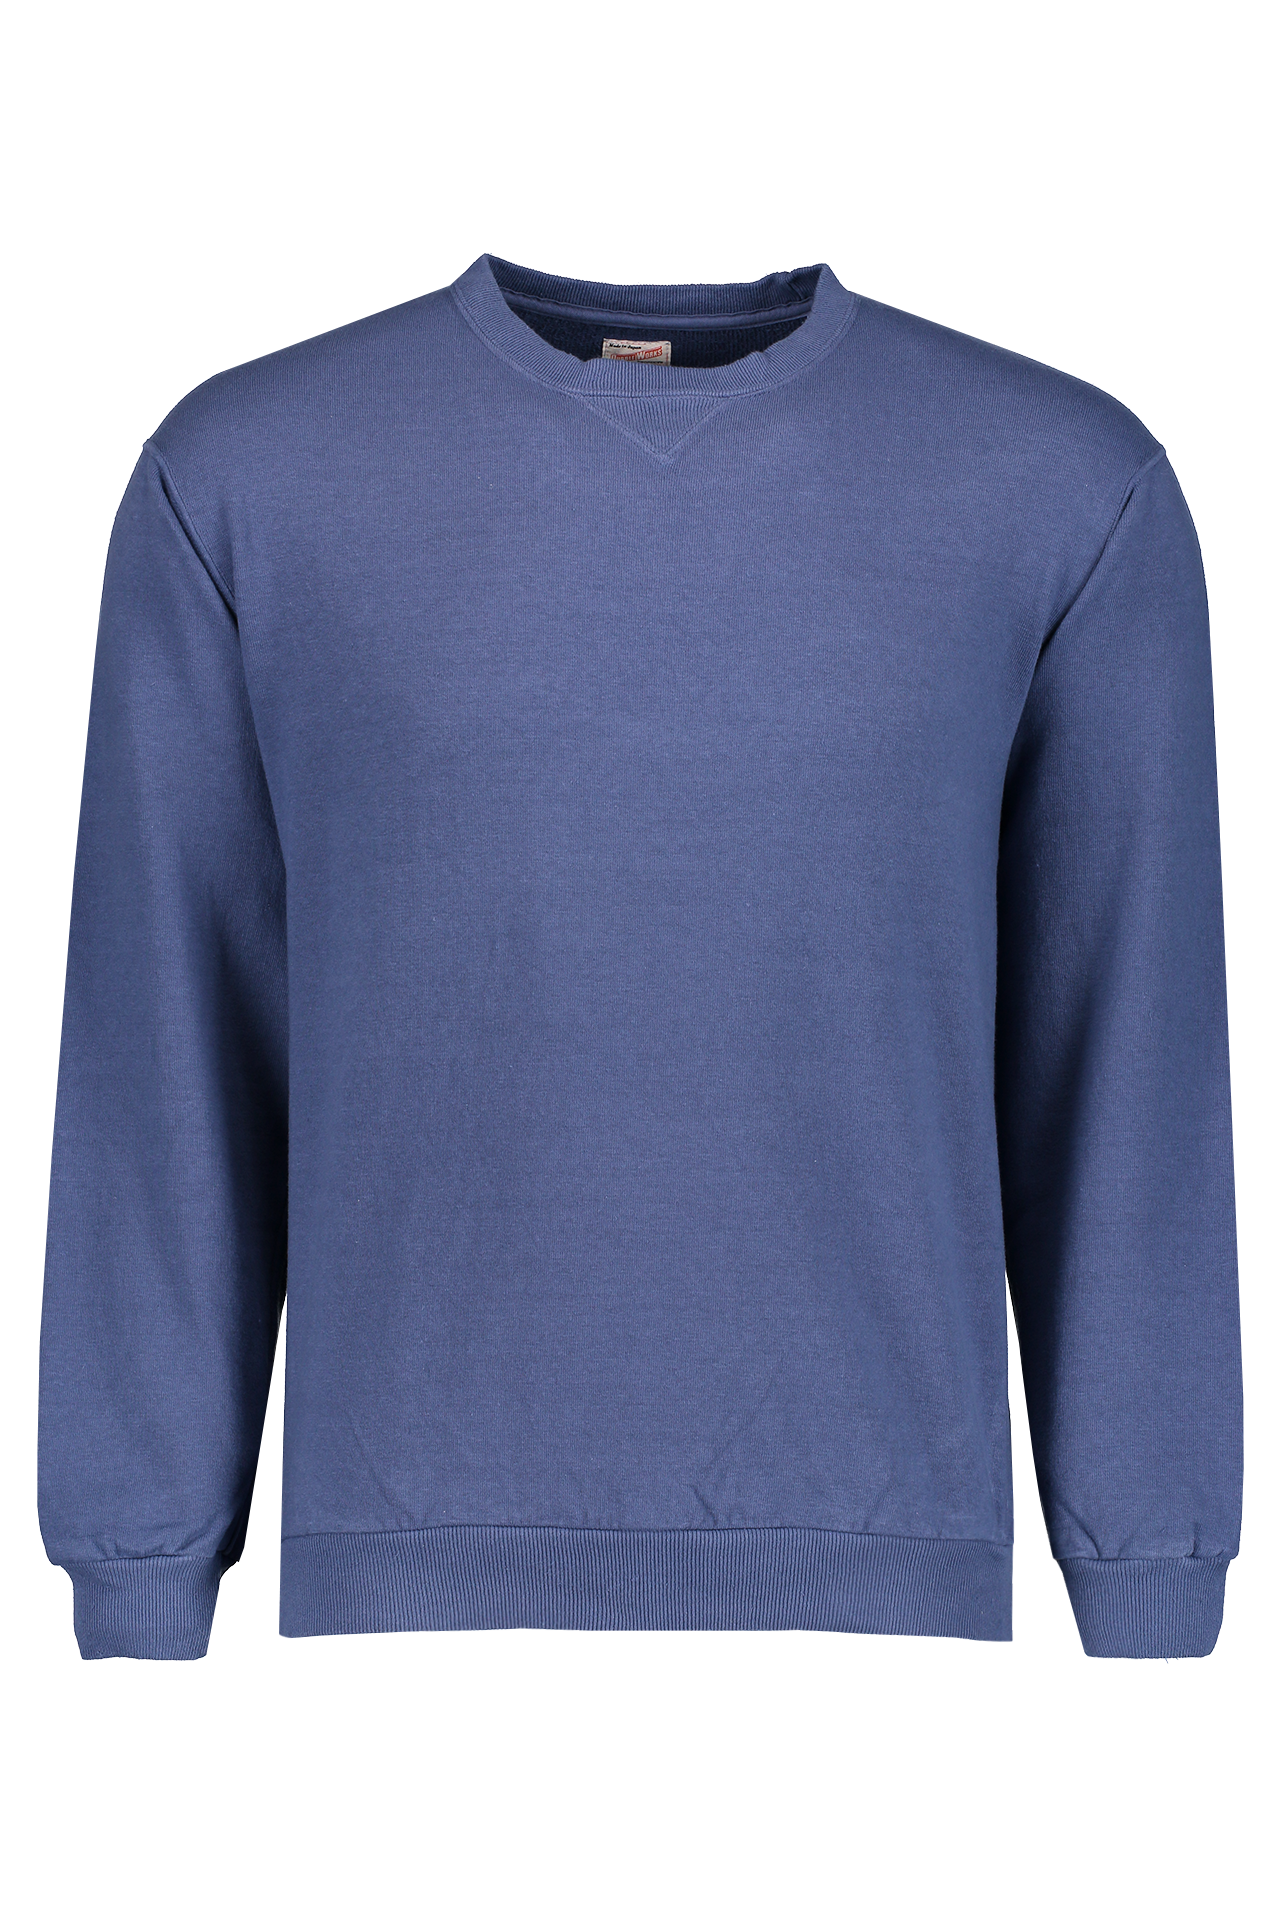 Front Image of Dubble Works Pocket Crewneck